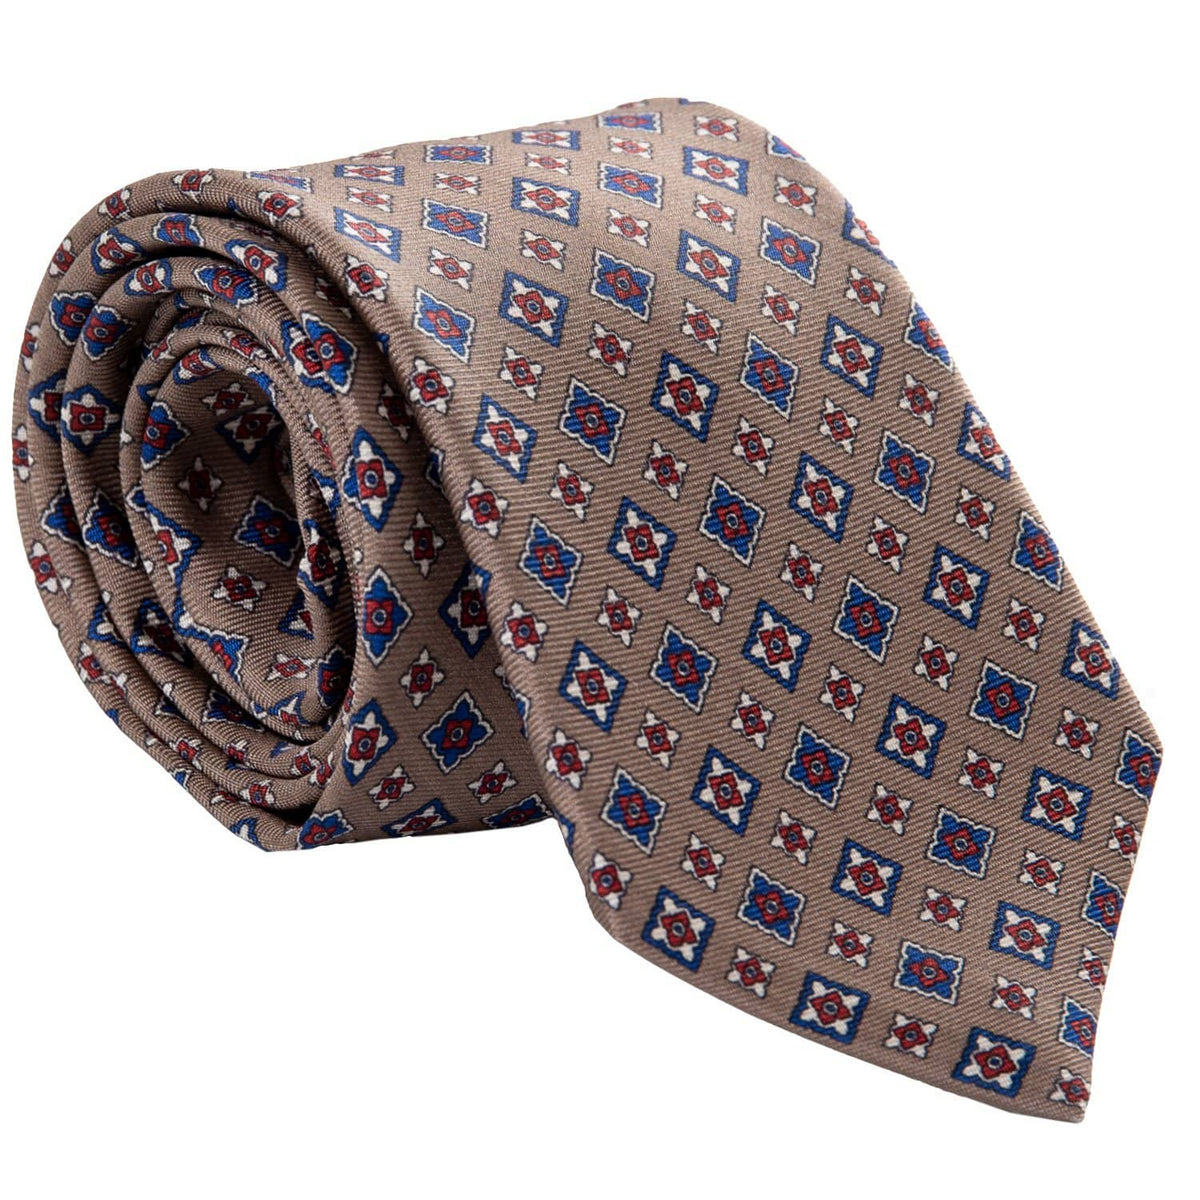 Patterned Tan Silk Tie - Extra Long - Handmade in Italy